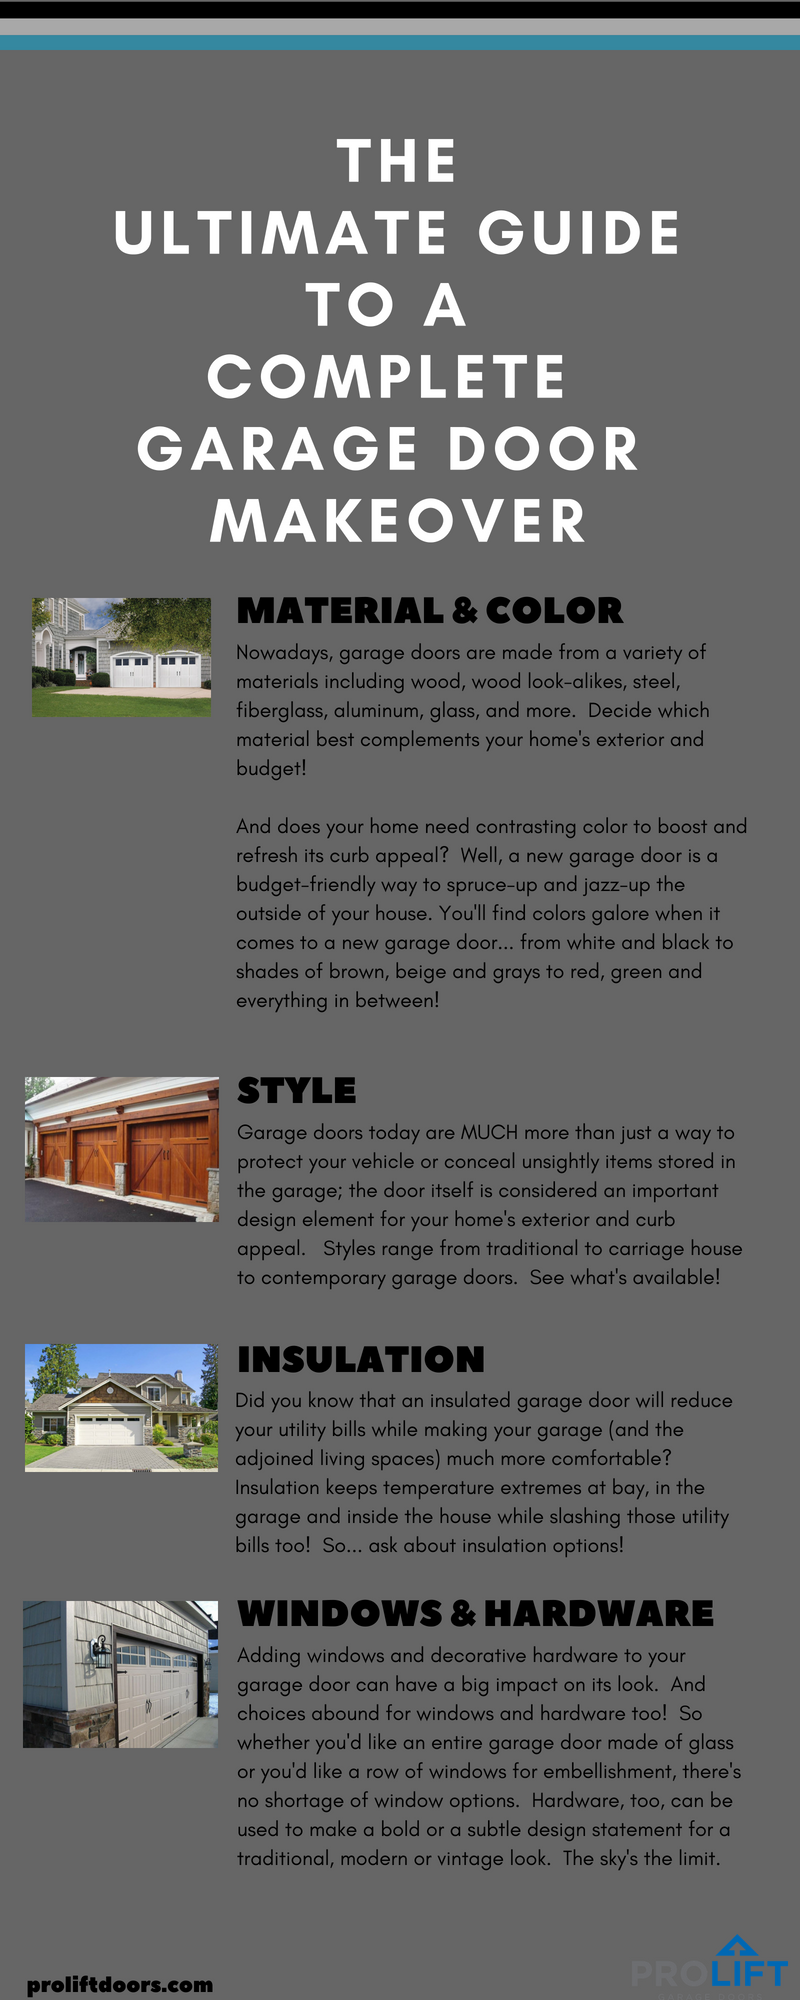 The Ultimate Guide To A Complete Garage Door Makeover Infographic